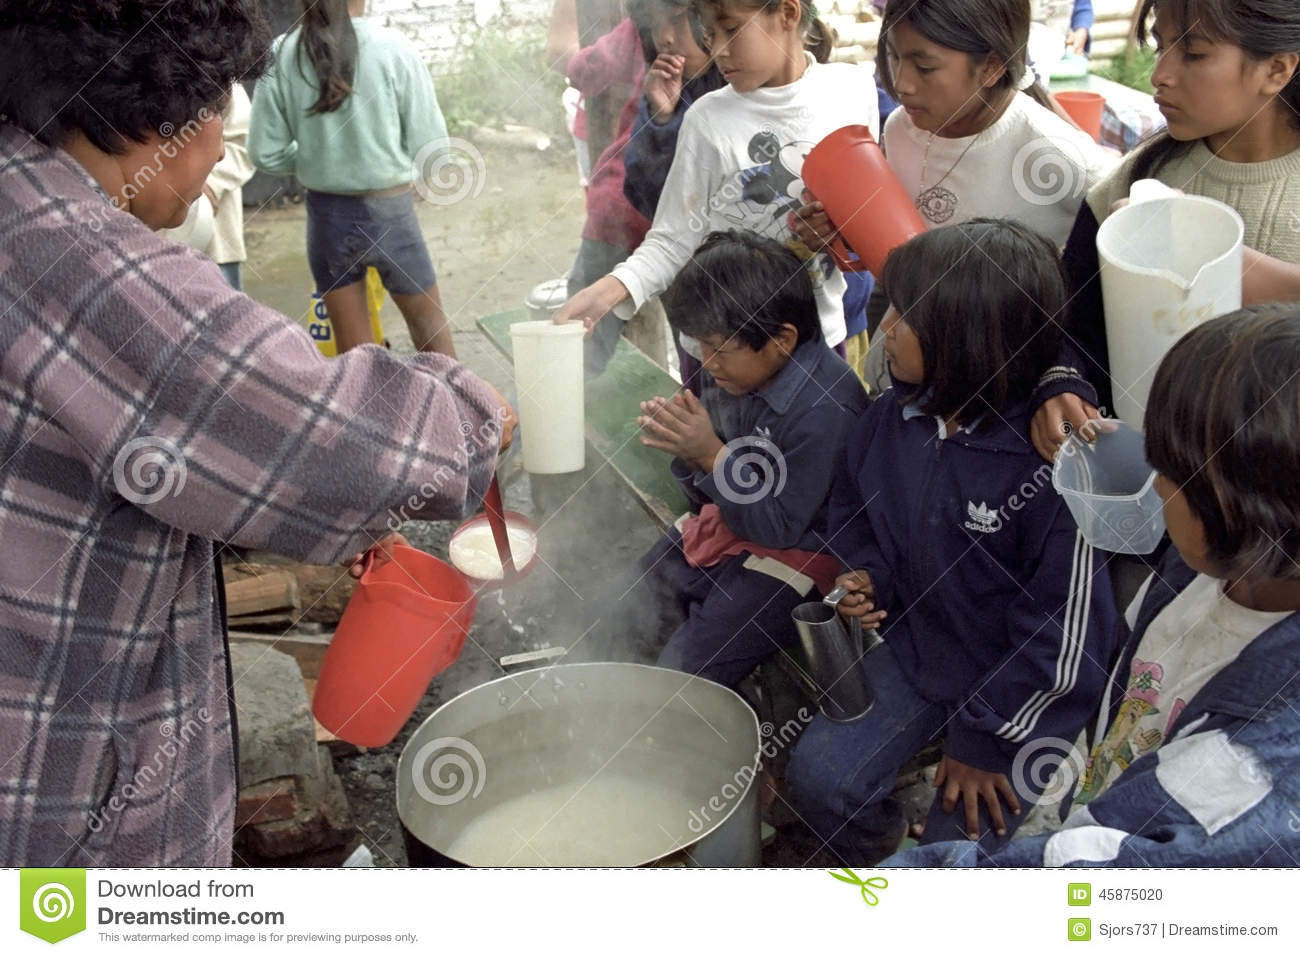 Food Distribution on Indian children in the Andes